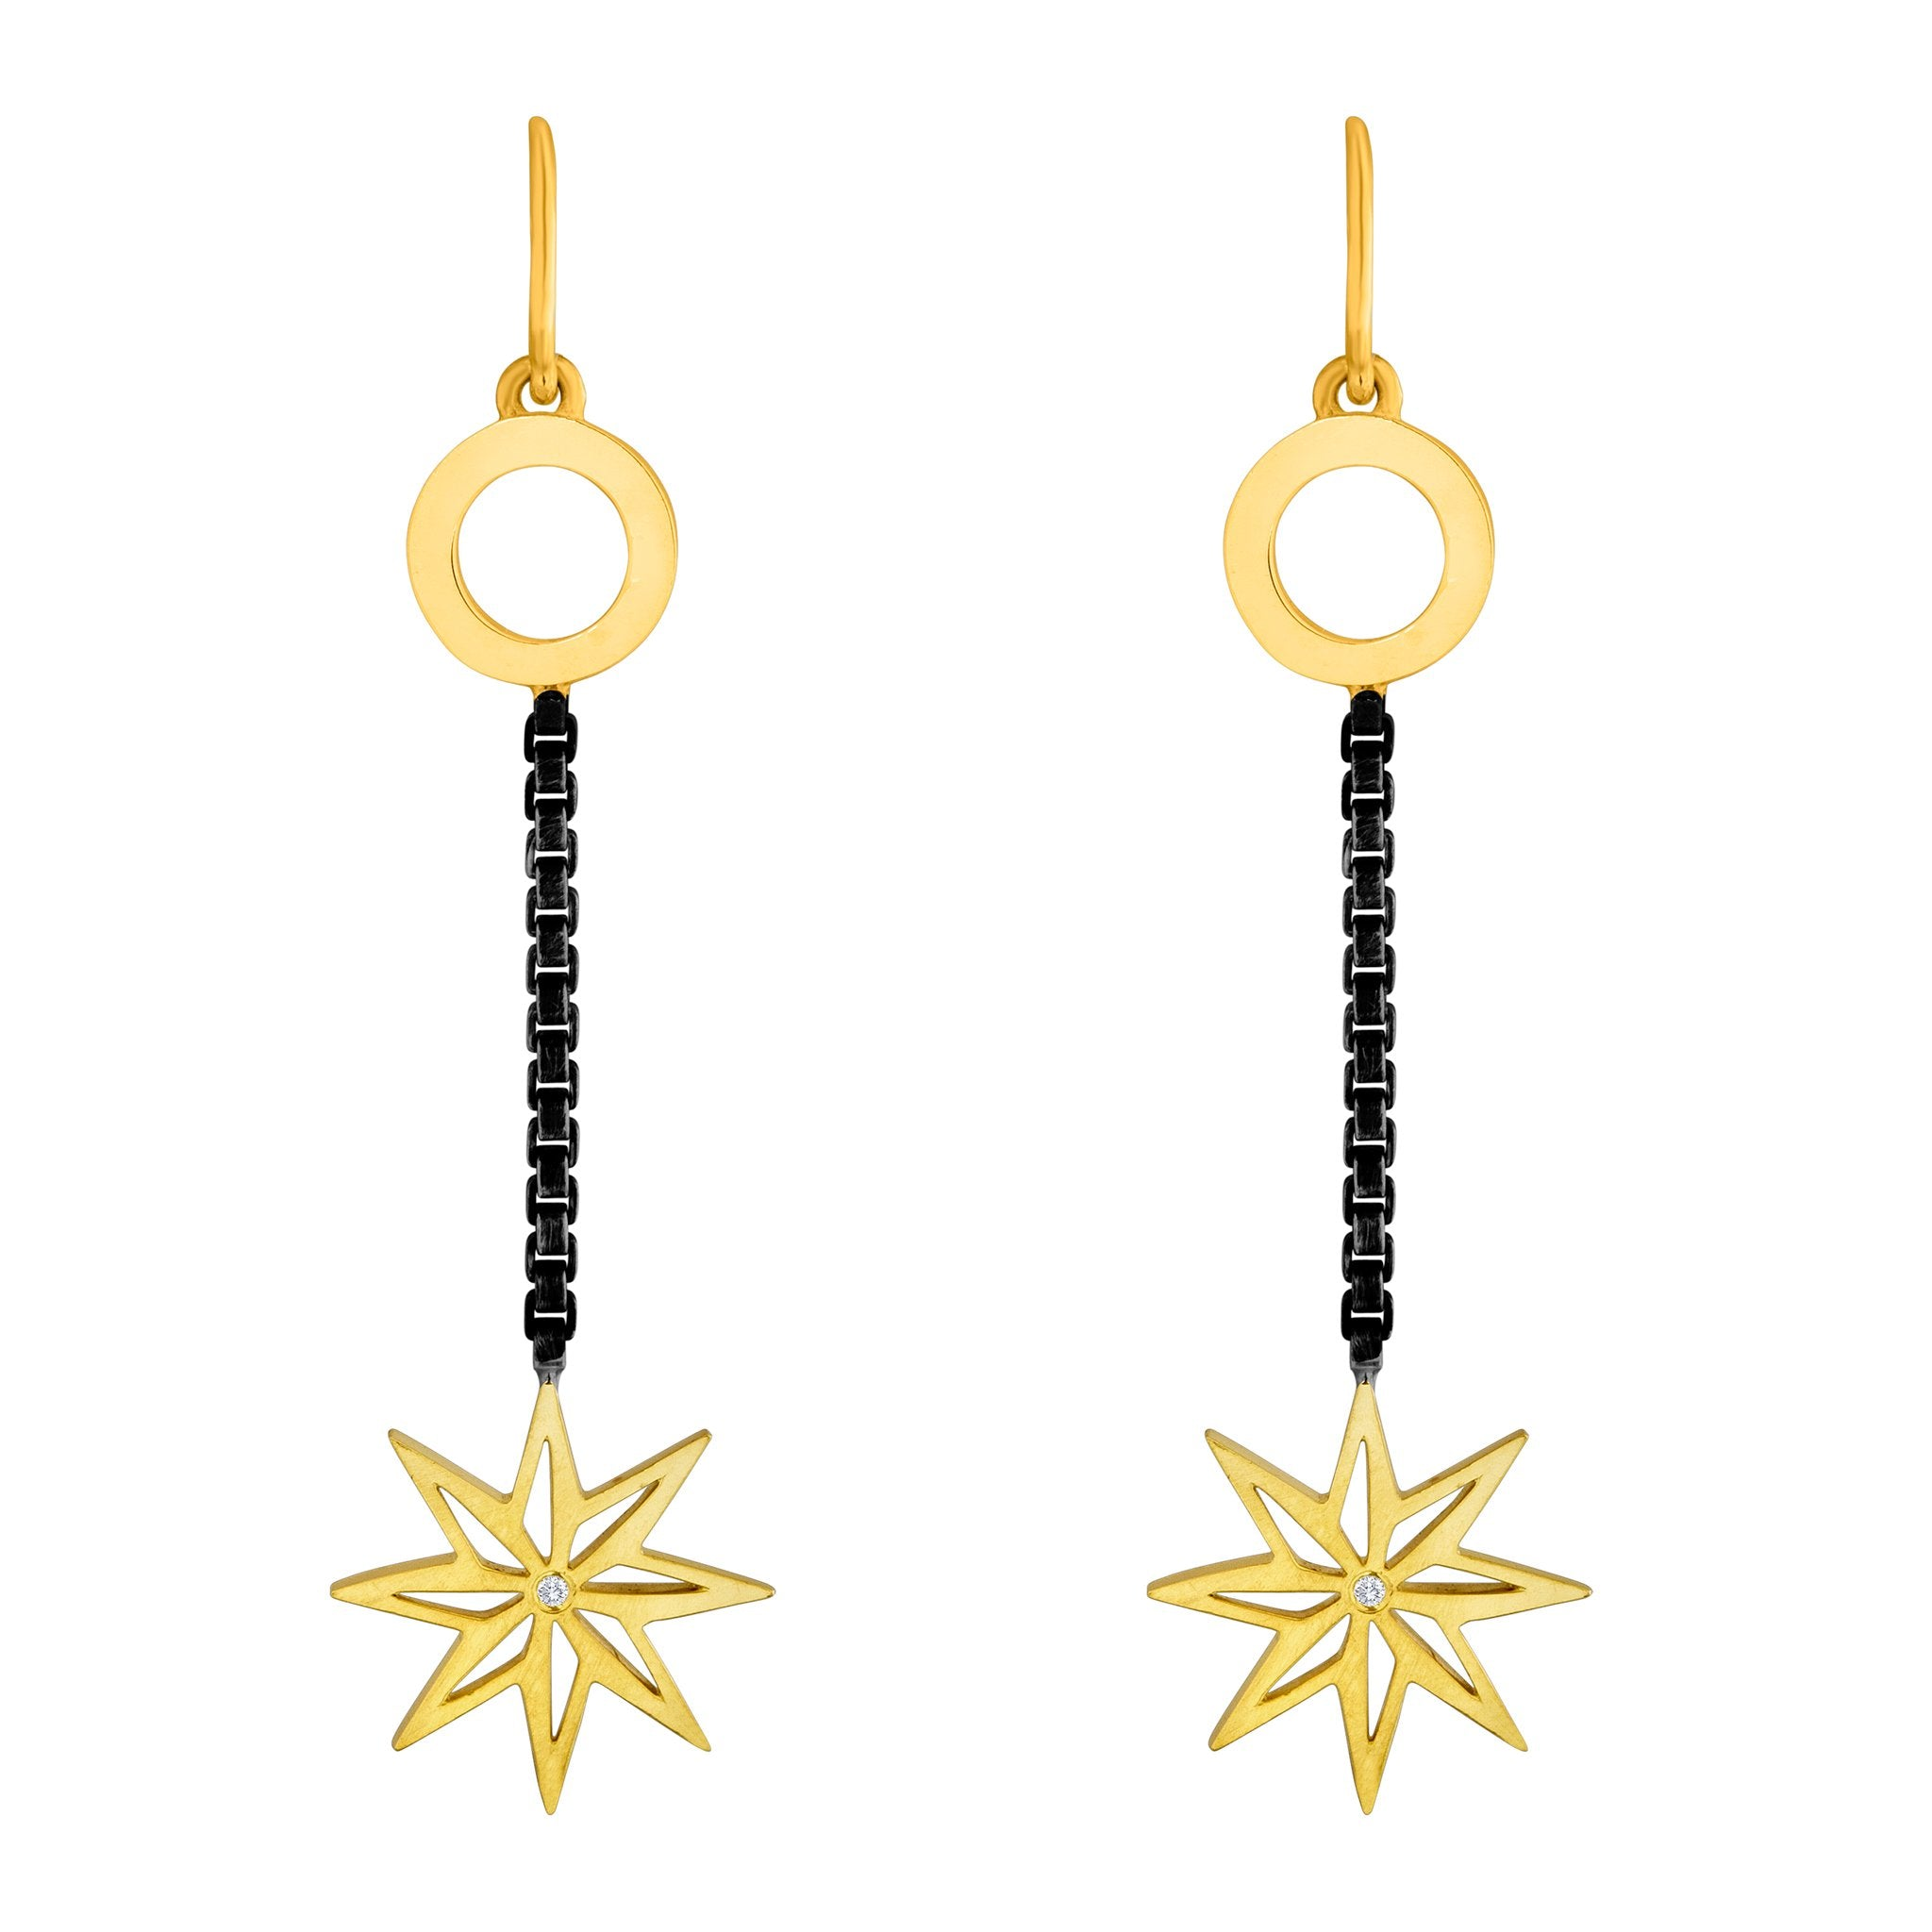 Stella Earrings: 18k Gold, Oxidized Silver, Diamonds